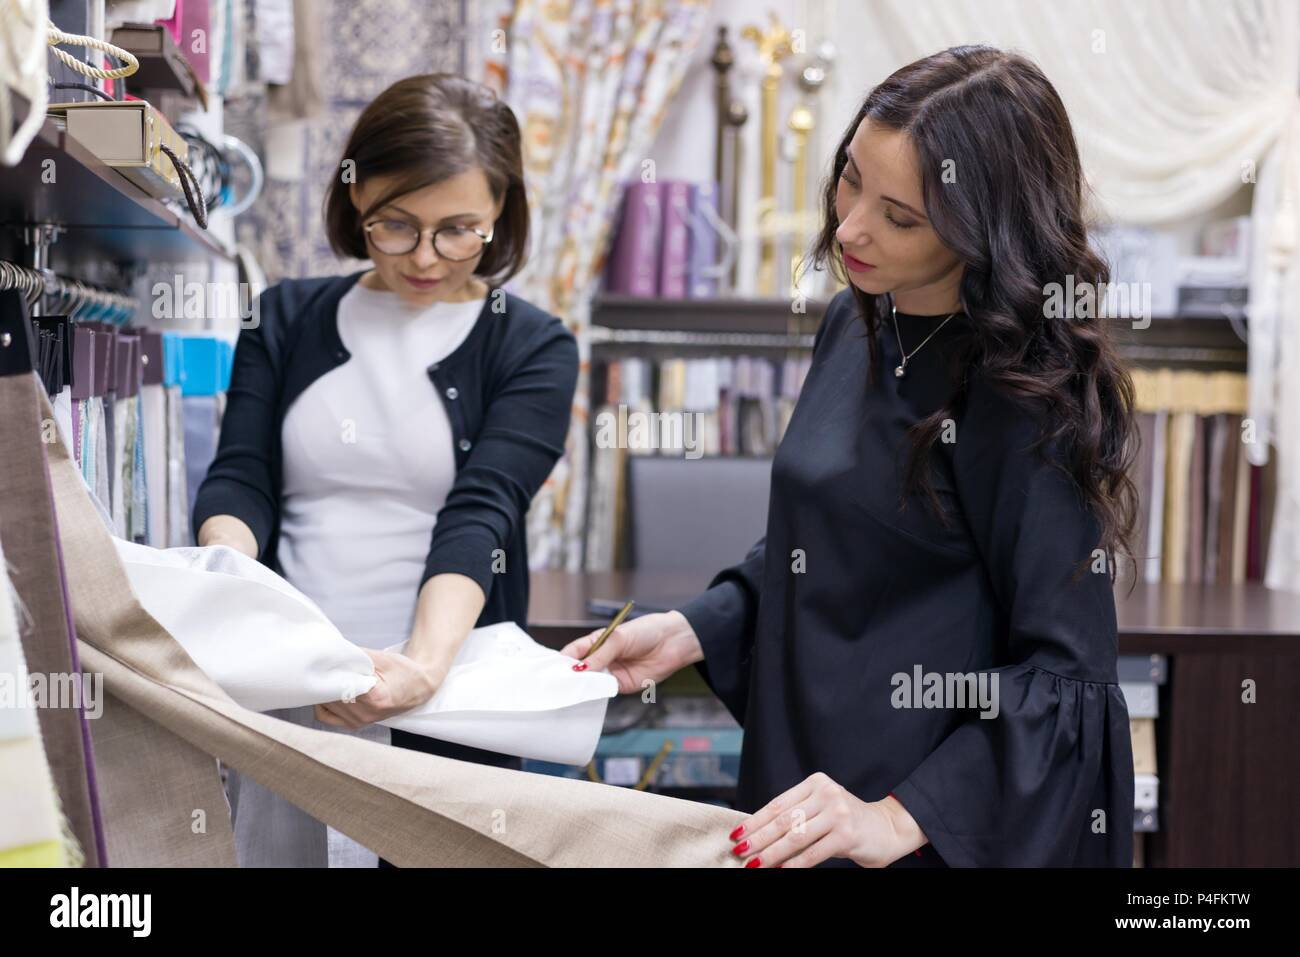 Woman Seller   Textile Designer Advises Woman Buyer. Selection Of Interior  Fabrics For Curtains, Bedspreads, Pillows. Decorating Shop